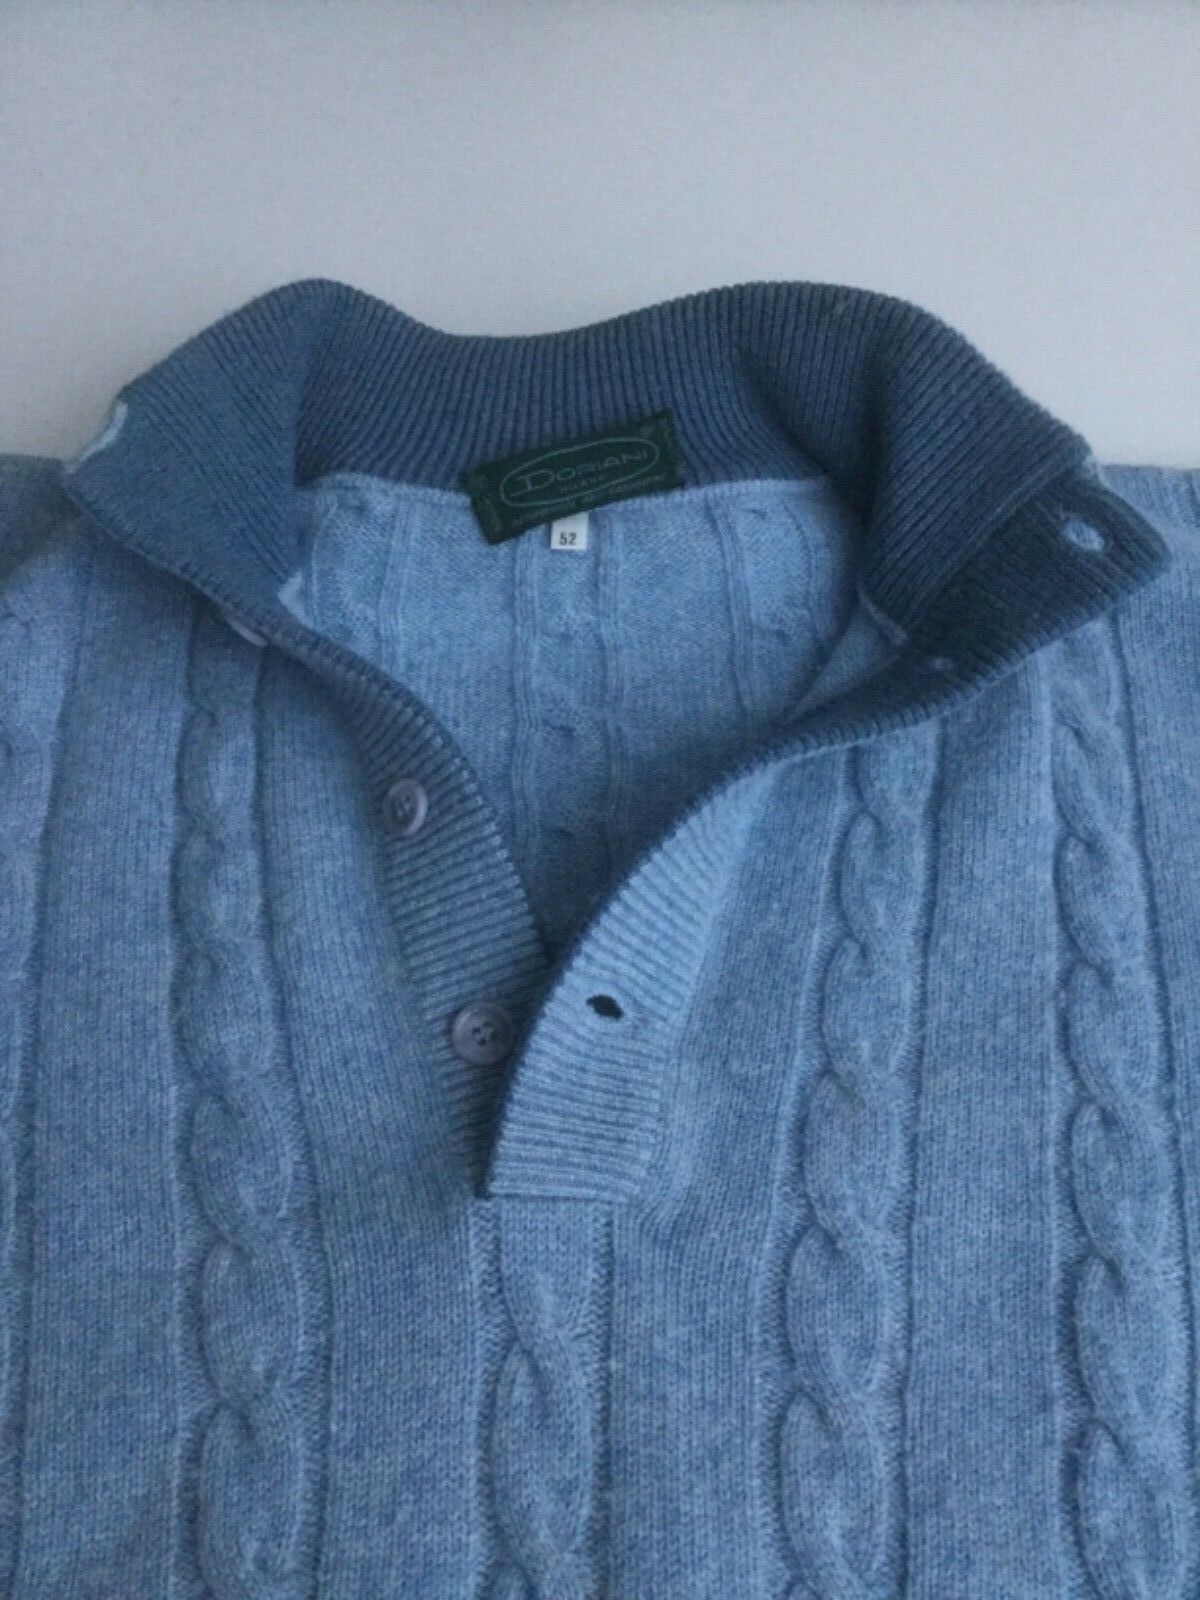 DORIANI 100% CASHMERE LUXURY Herren Blau CABLE KNIT JUMPER SIZE 52